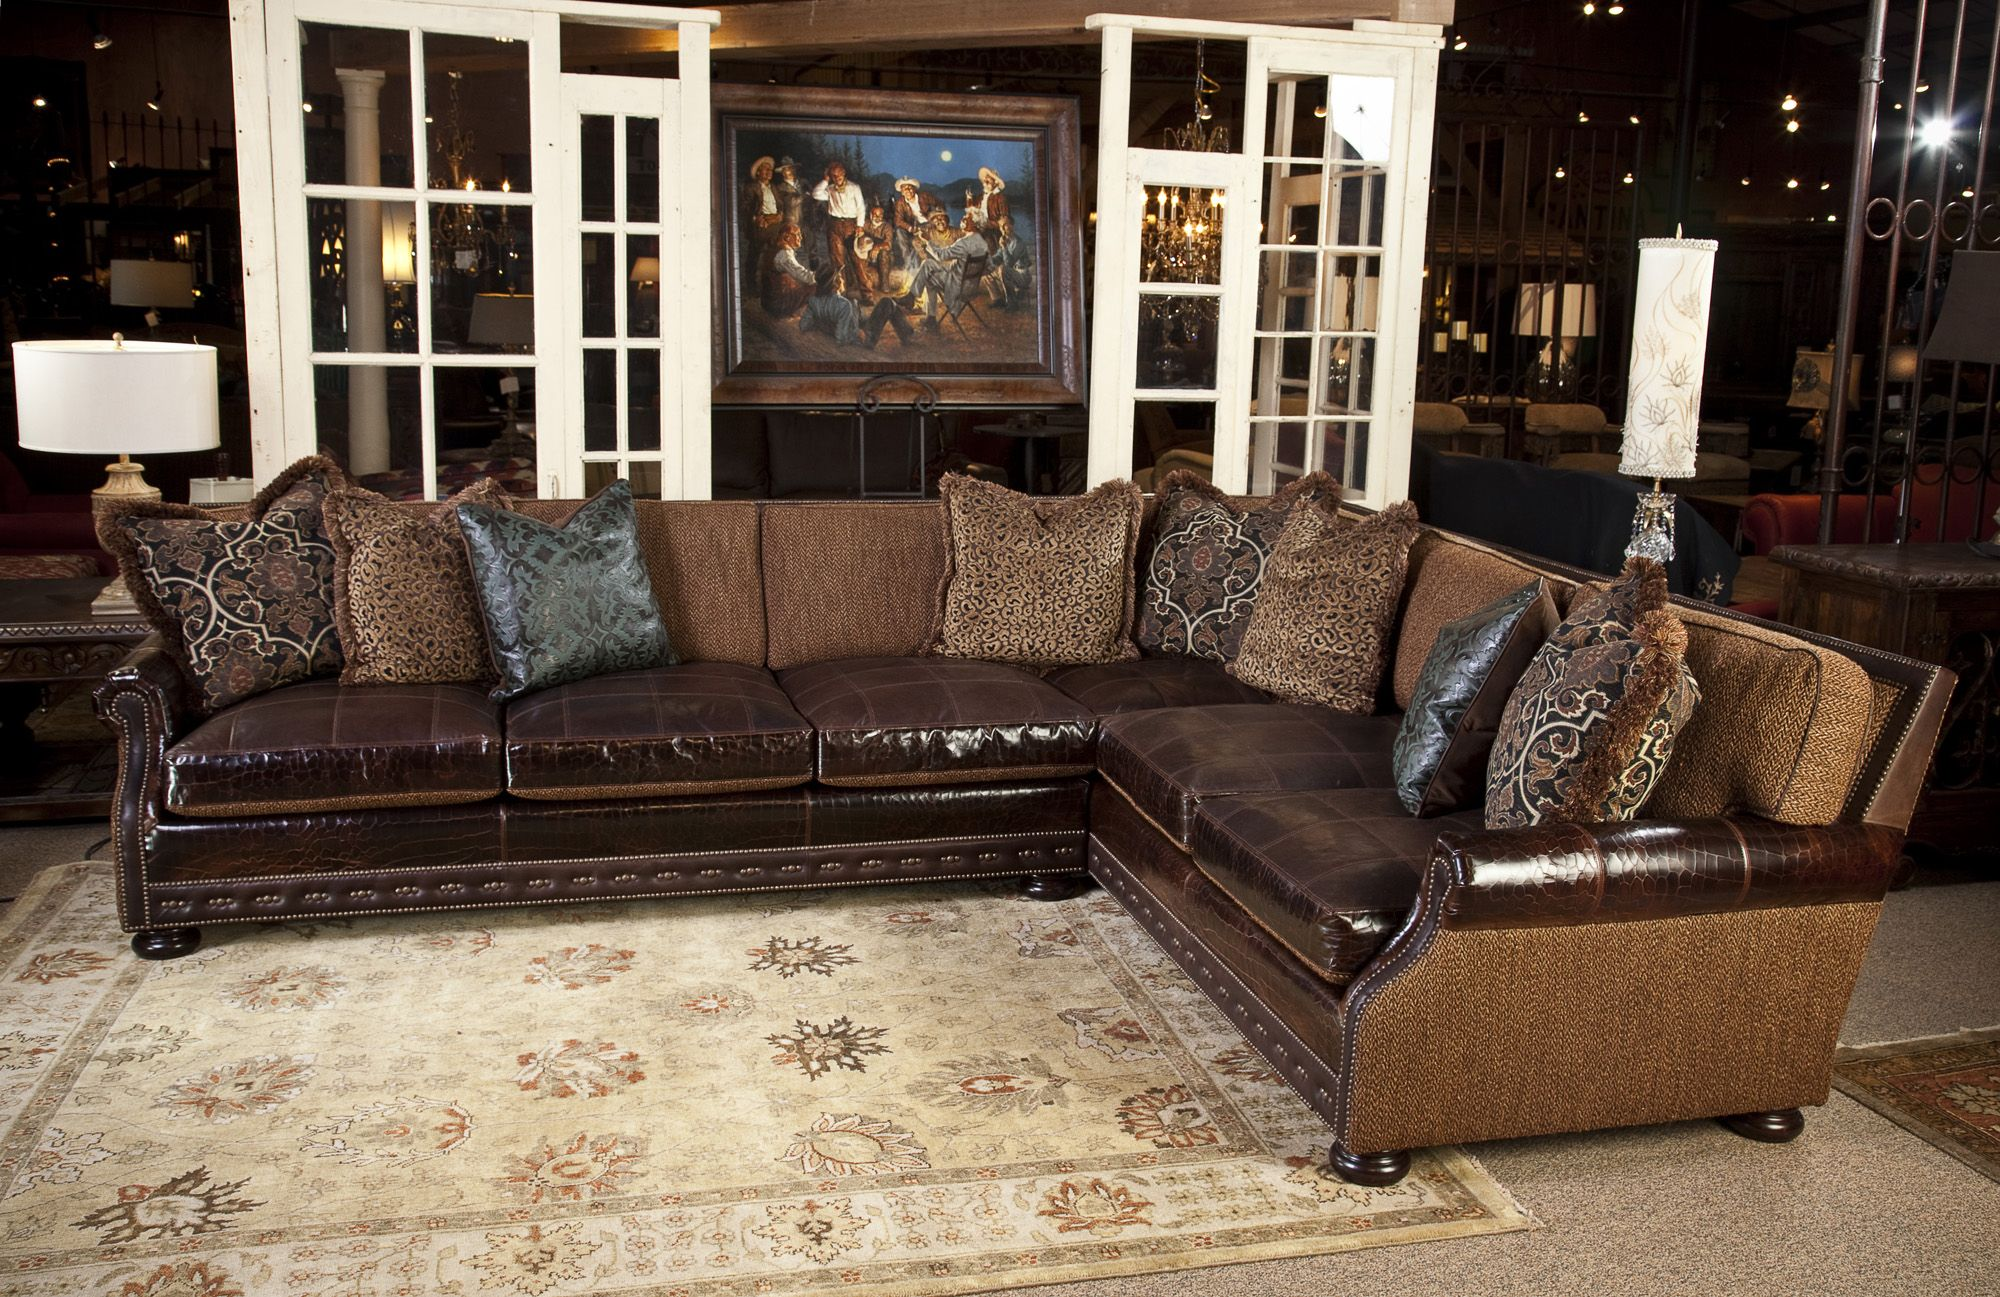 material and leather sofa wegner getama sally mae sectional dreamy ideas pinterest fabric great for media room all pillows are included western art living at brumbaugh s 817 244 9377